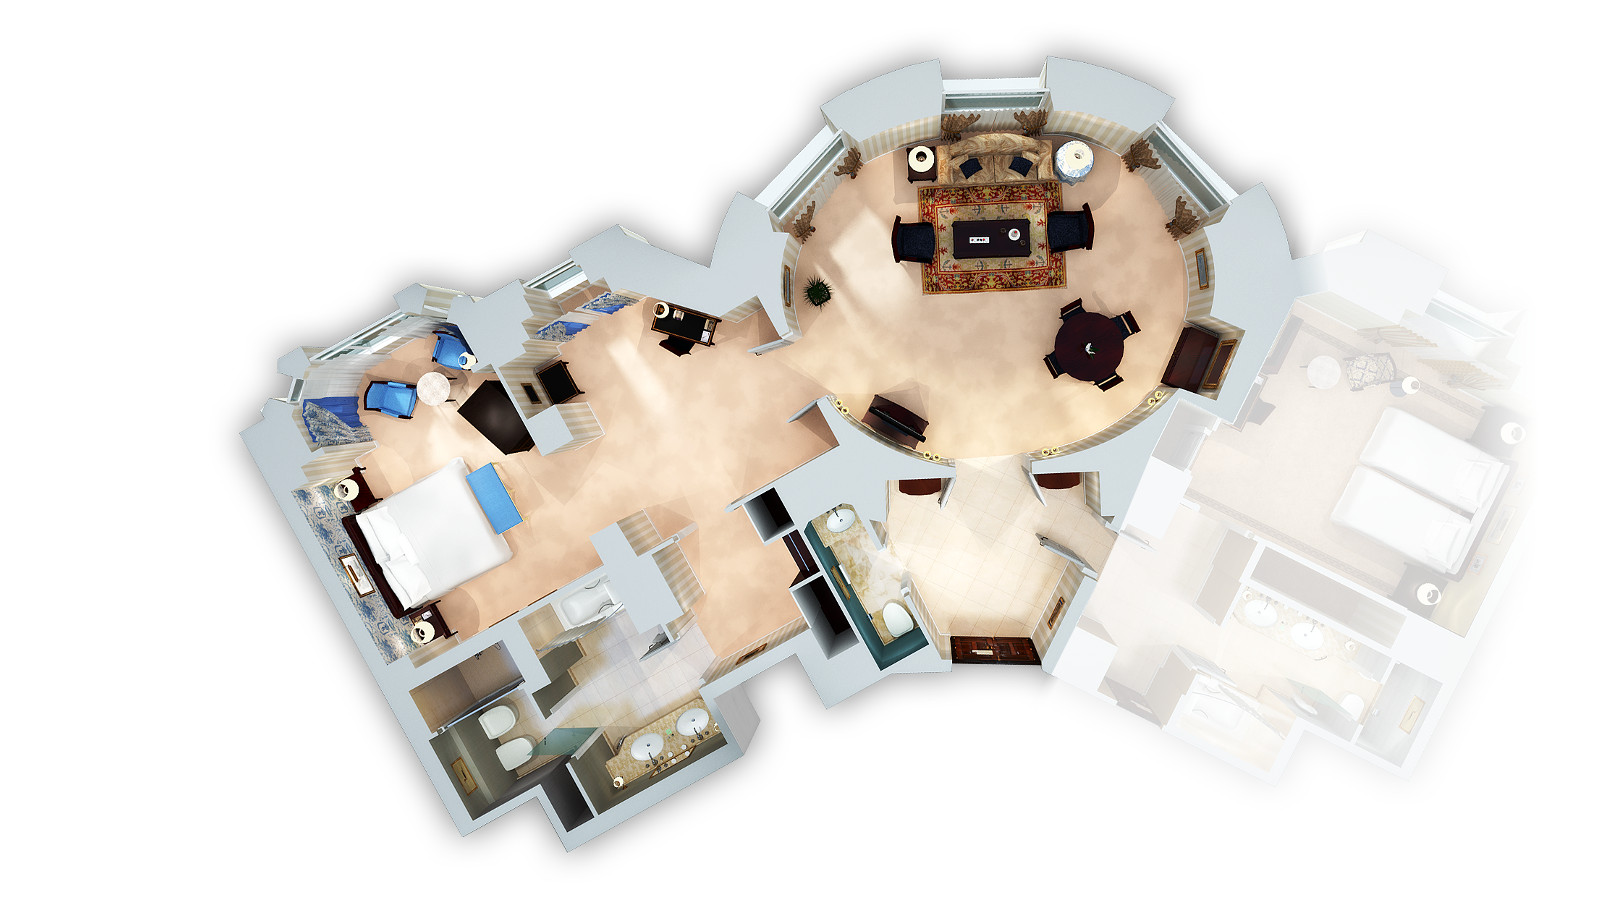 EXECUTIVE SUITE 3D FLOOR PLAN (CONNECTING ROOM AVAILABLE)